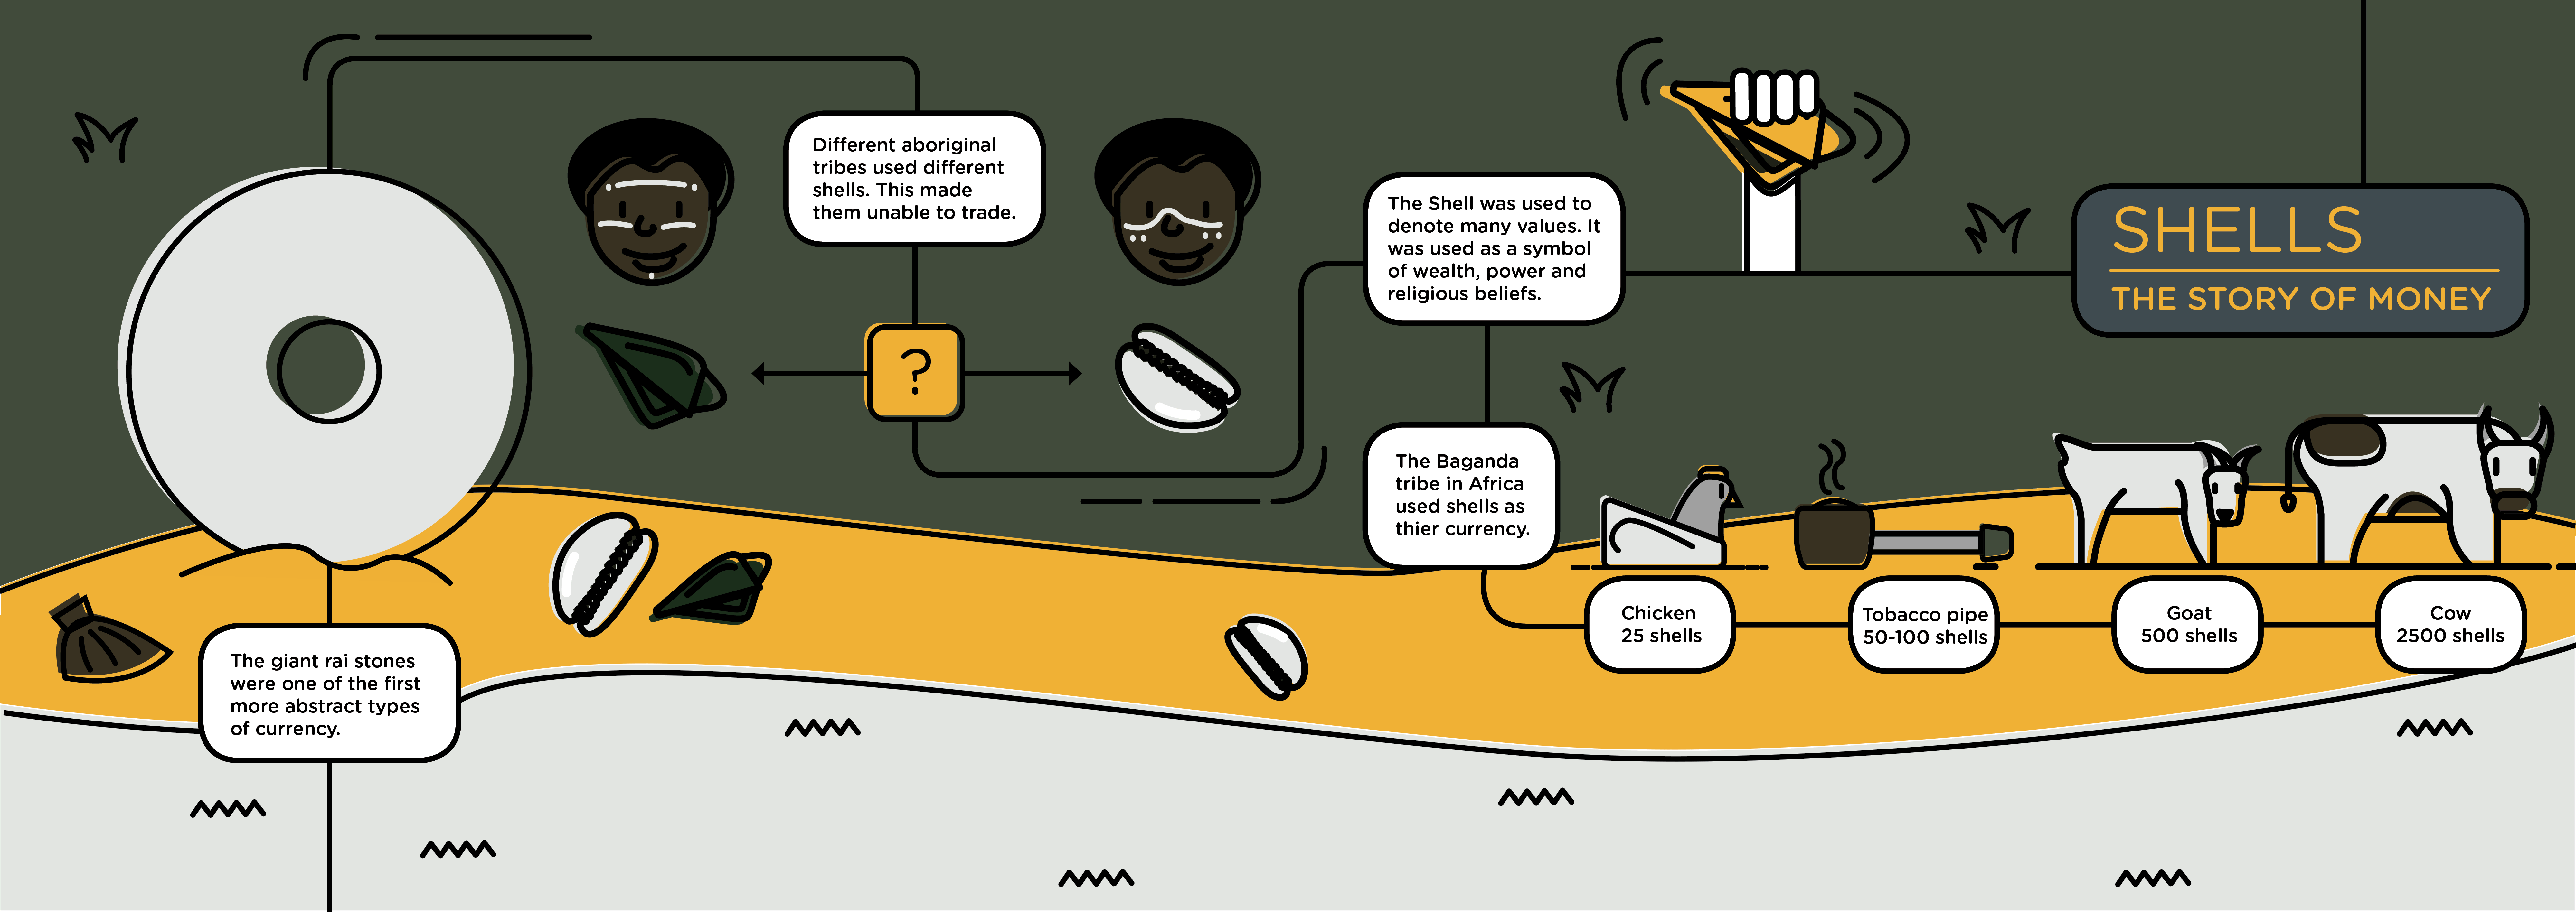 Visual of The Story of Money: Shells